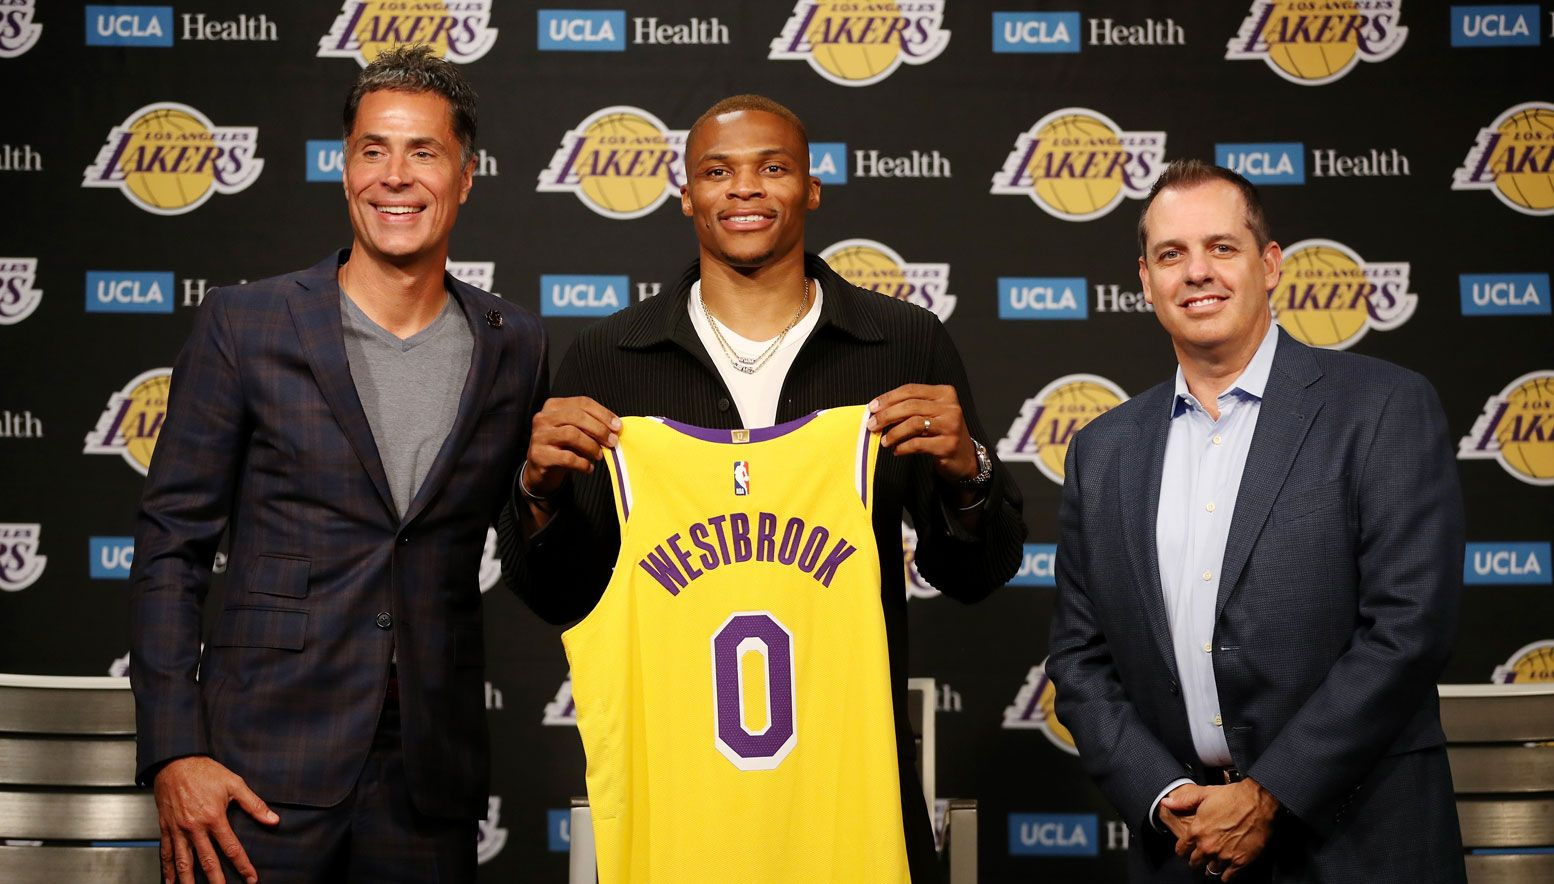 Russell Westbrook introduced by the Lakers